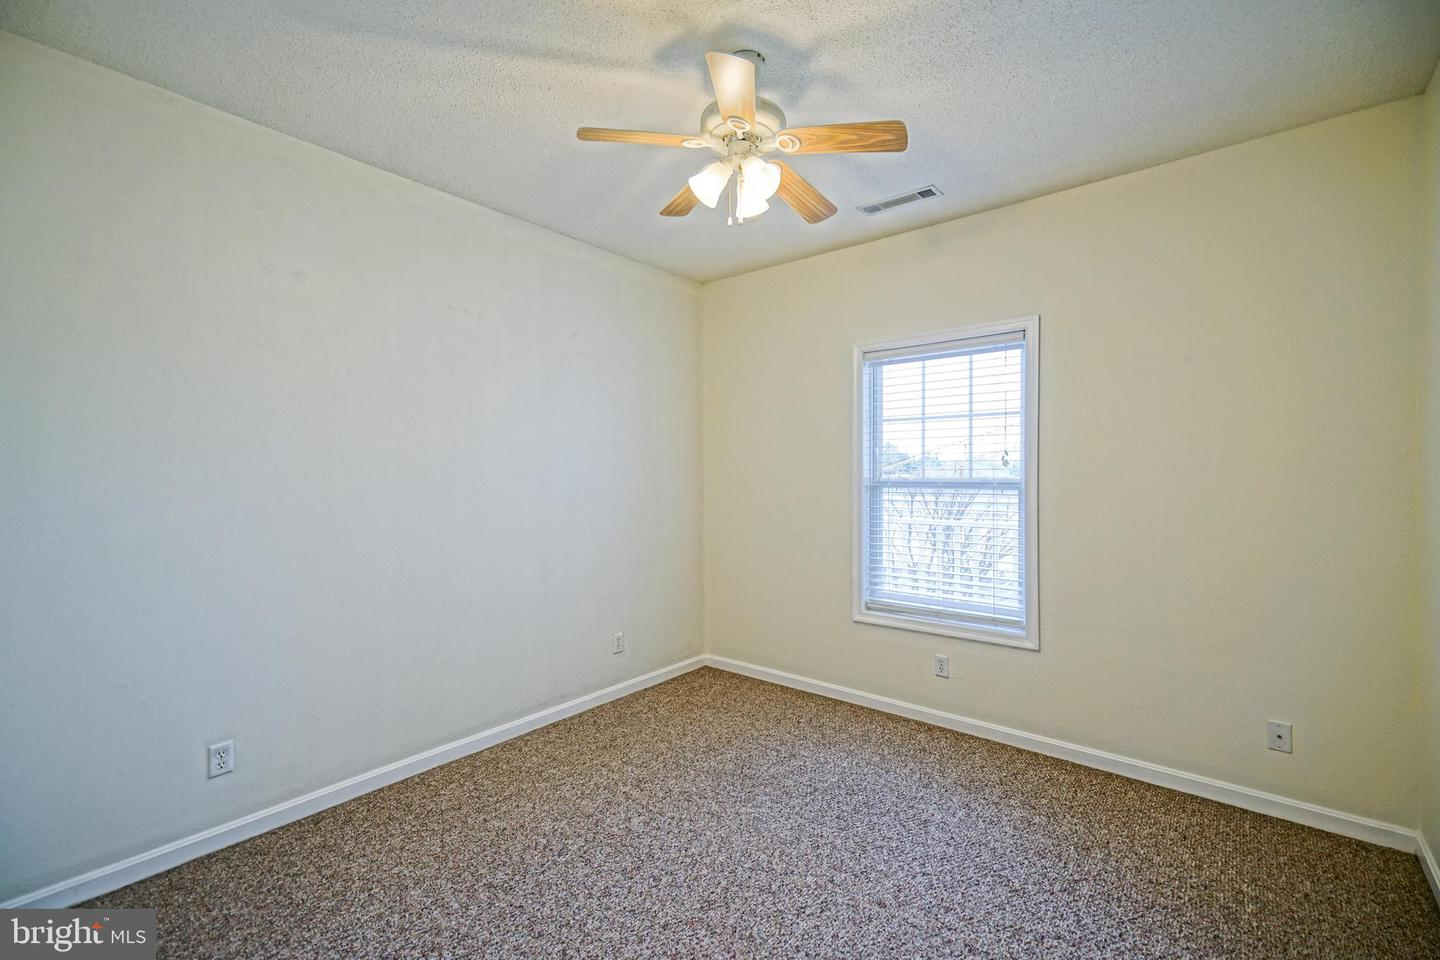 DESU139032-301664482991-2019-06-24-14-51-56 33156 N Village Loop #4202 | Lewes, DE Real Estate For Sale | MLS# Desu139032  - Lee Ann Group